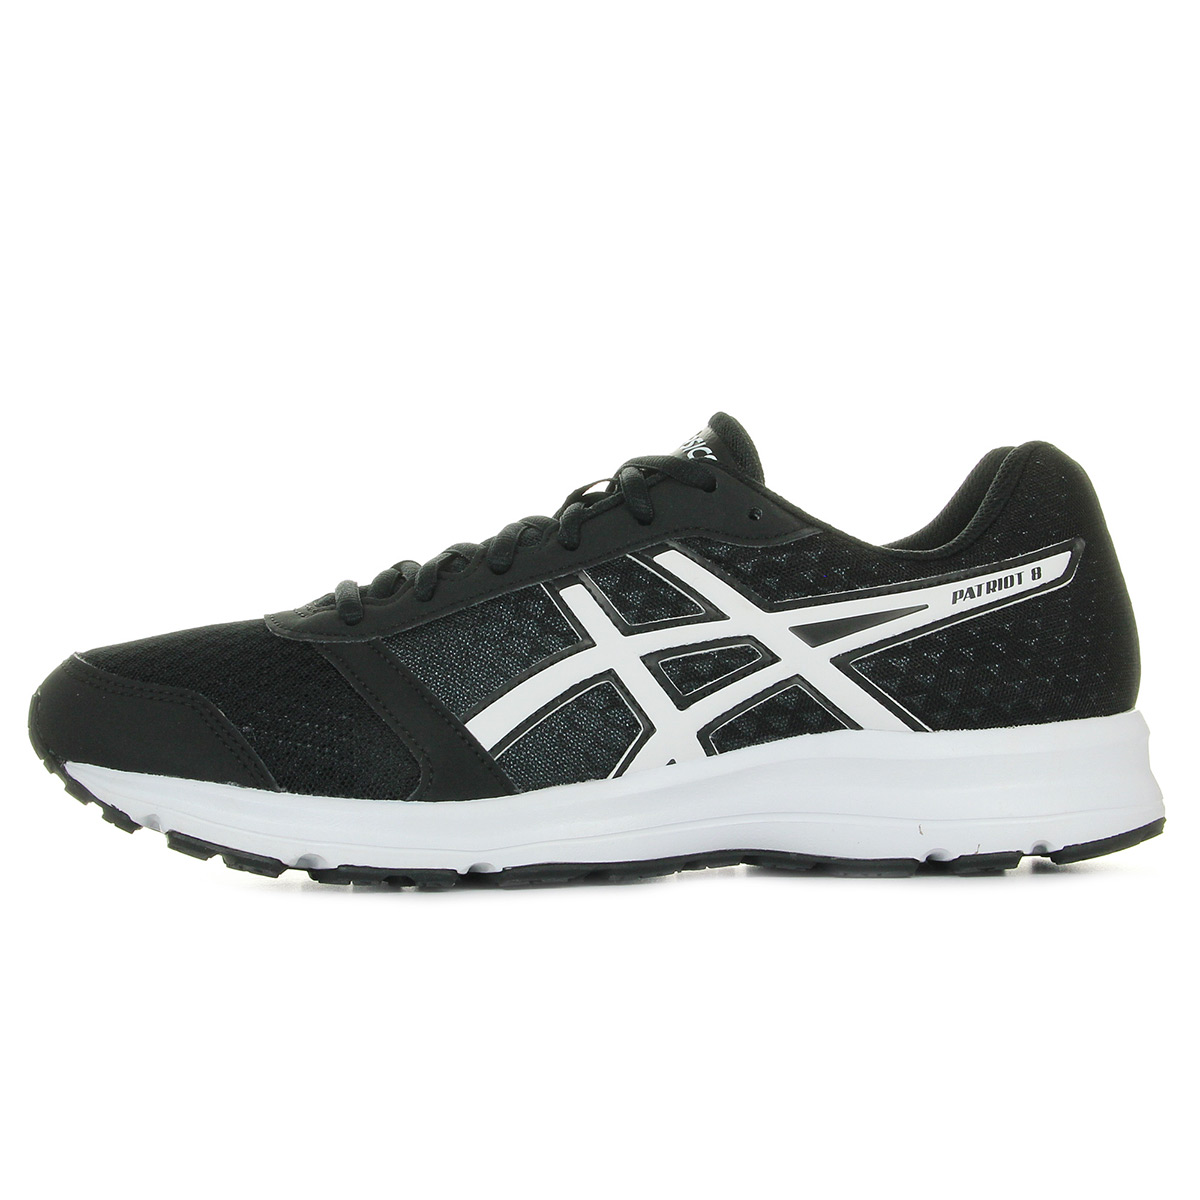 Asics Patriot 8 Black/White/White T619N9001, Running homme